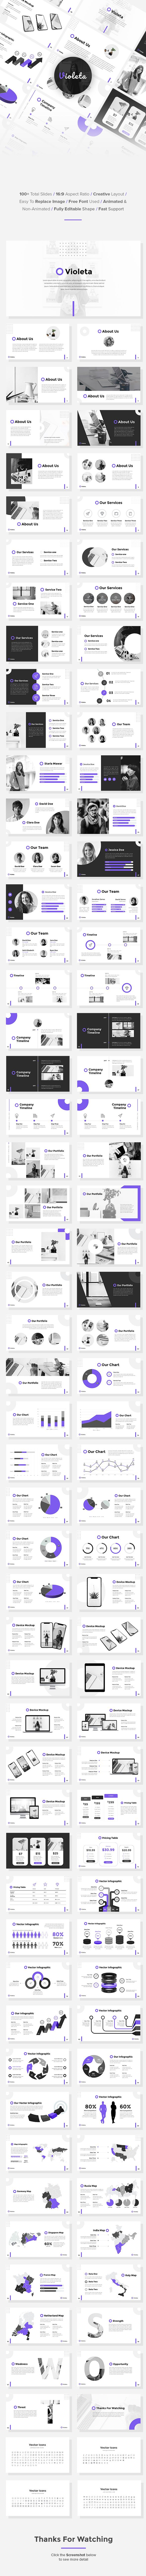 Violeta  StartUp Pitch Deck Google Slides Template — Google Slides PPTX #google slides template #start up • Available here ➝ https://graphicriver.net/item/violeta-startup-pitch-deck-google-slides-template/20960831?ref=pxcr